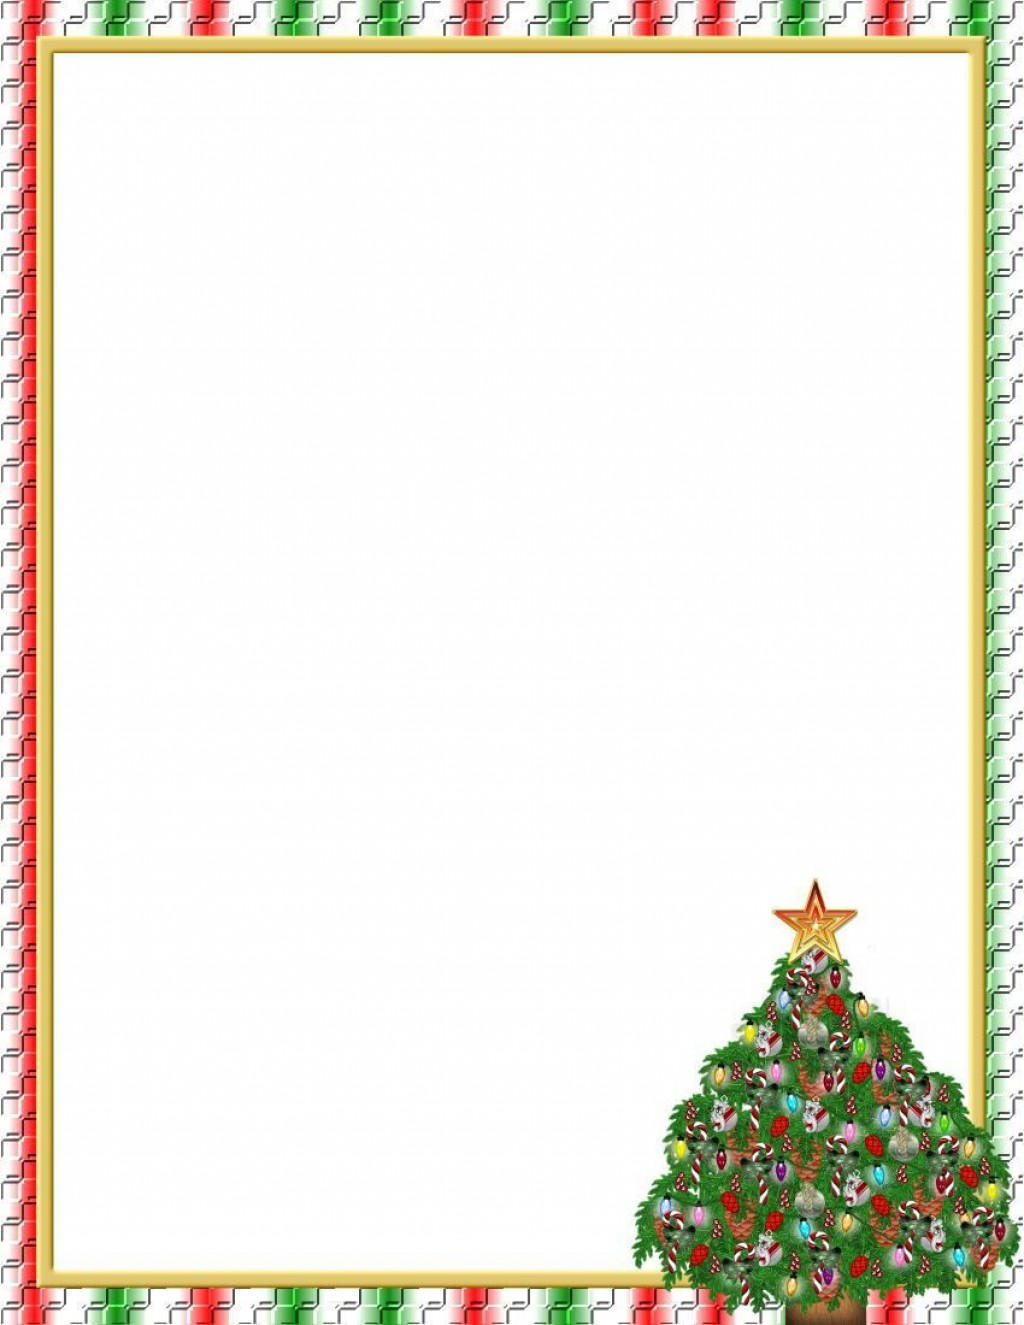 007 Phenomenal Free Christma Letter Template For Microsoft Word Sample  Downloadable NewsletterLarge